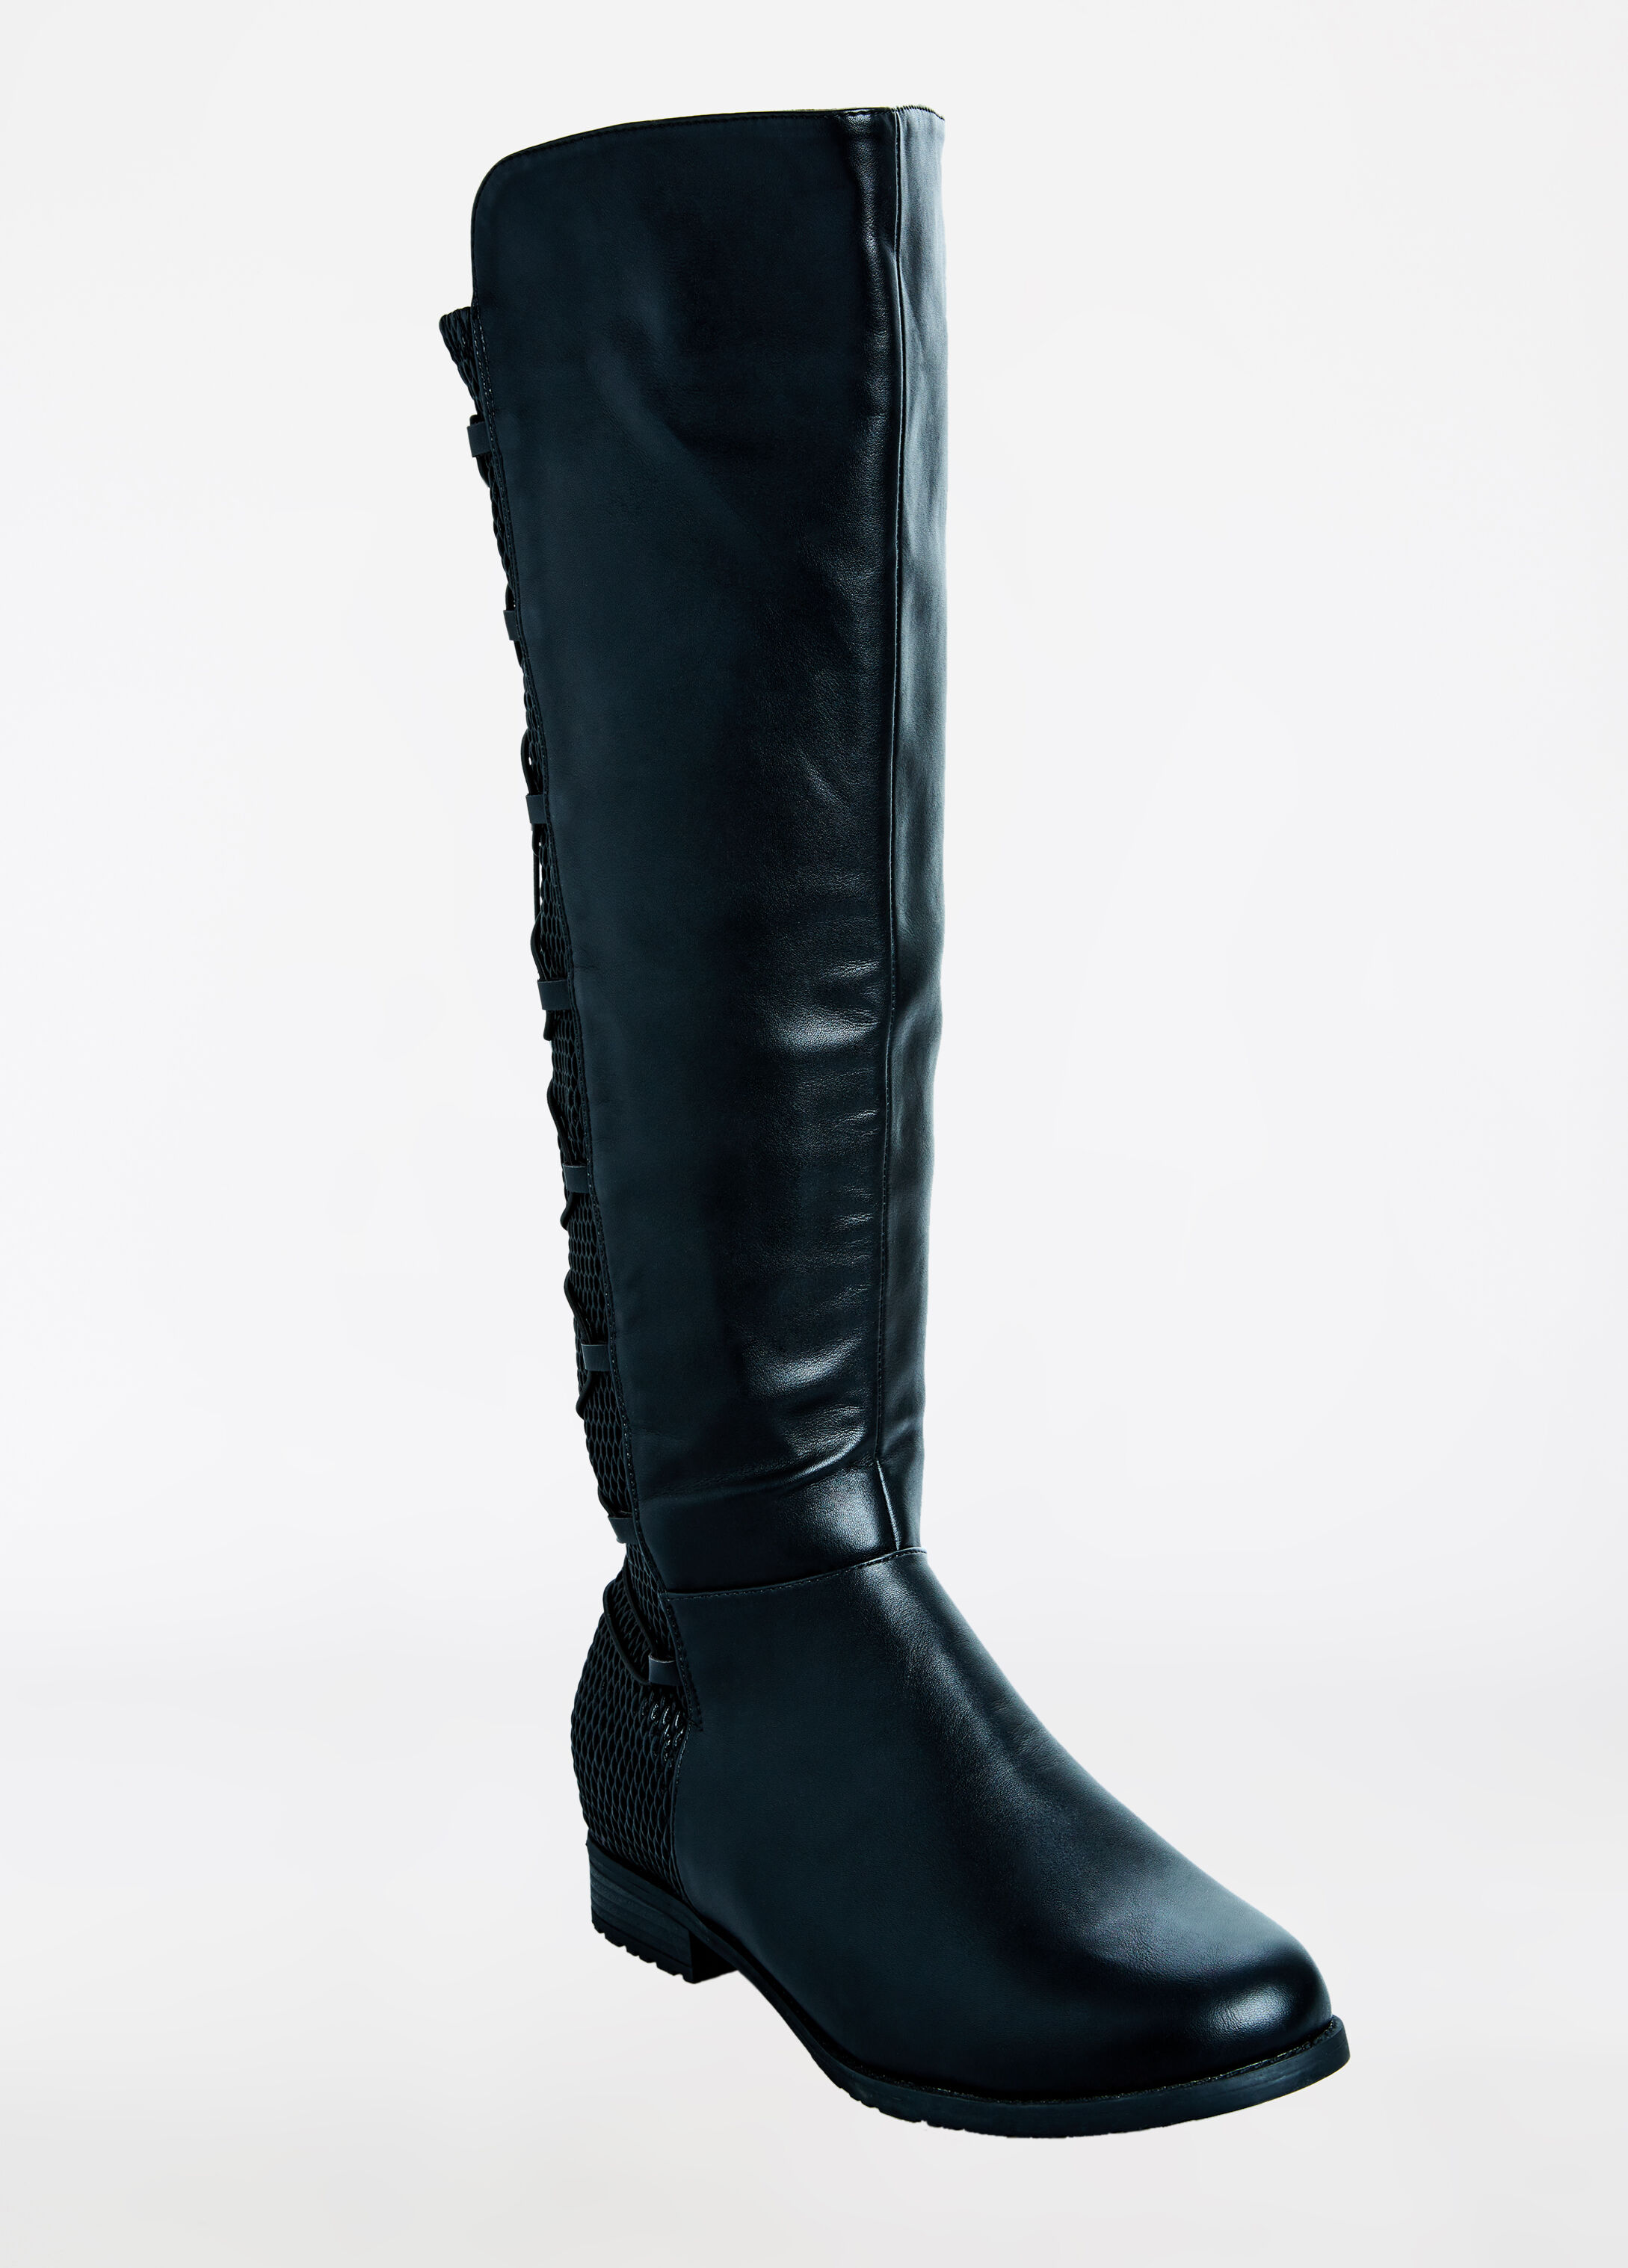 Lace Up Stretch Flat Calf Boot - Wide Width Black - Clearance